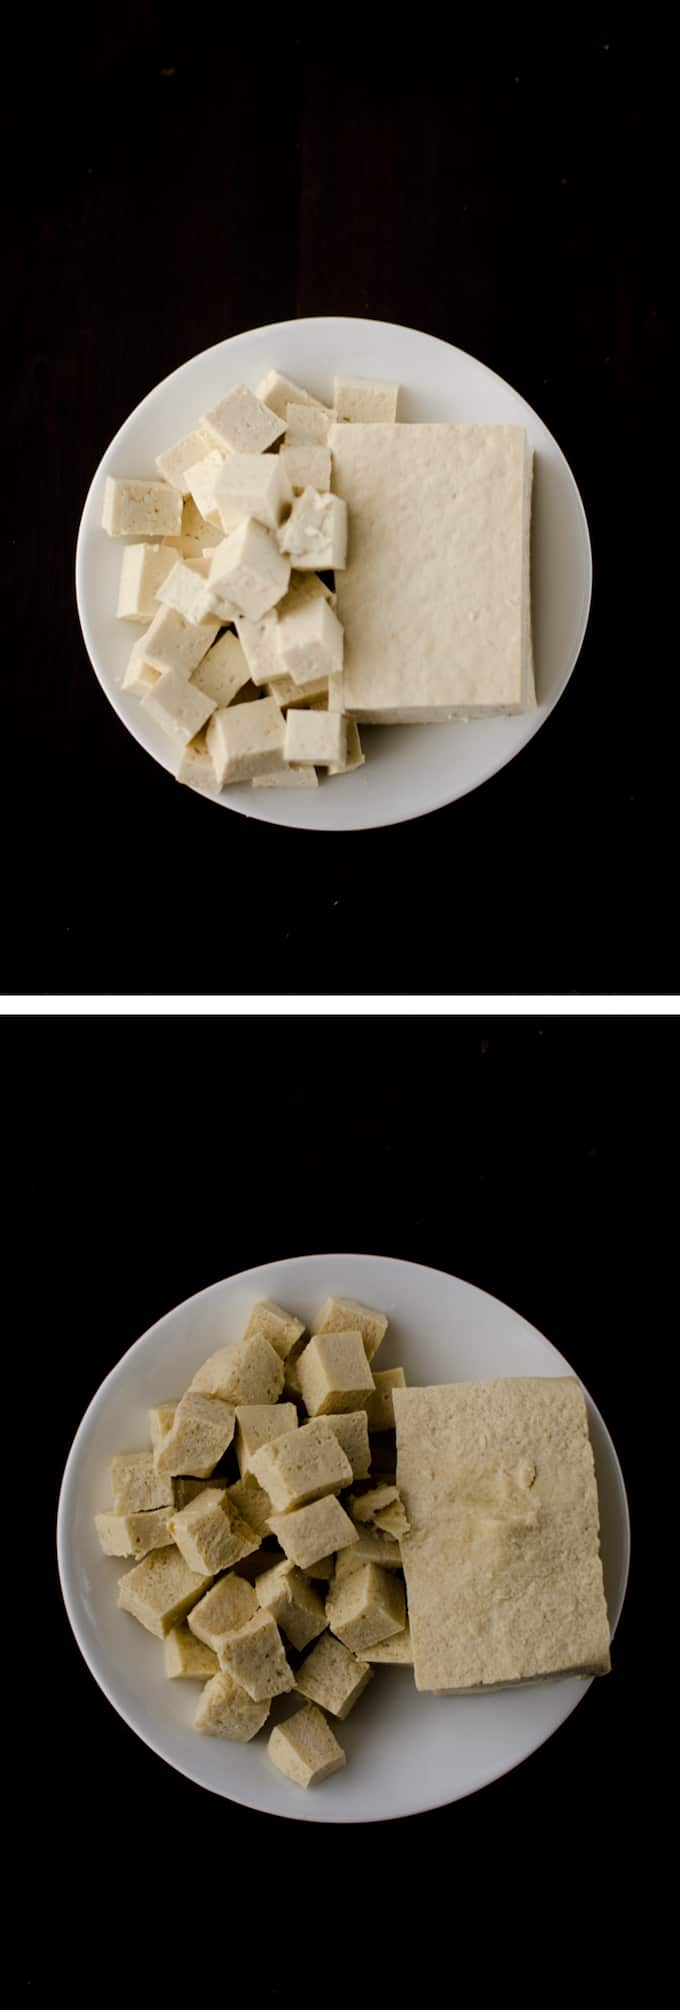 Overhead view of Regular Firm Tofu compared with Defrosted Firm Tofu on white plate and dark wood background. Stories from garlicdelight.com.